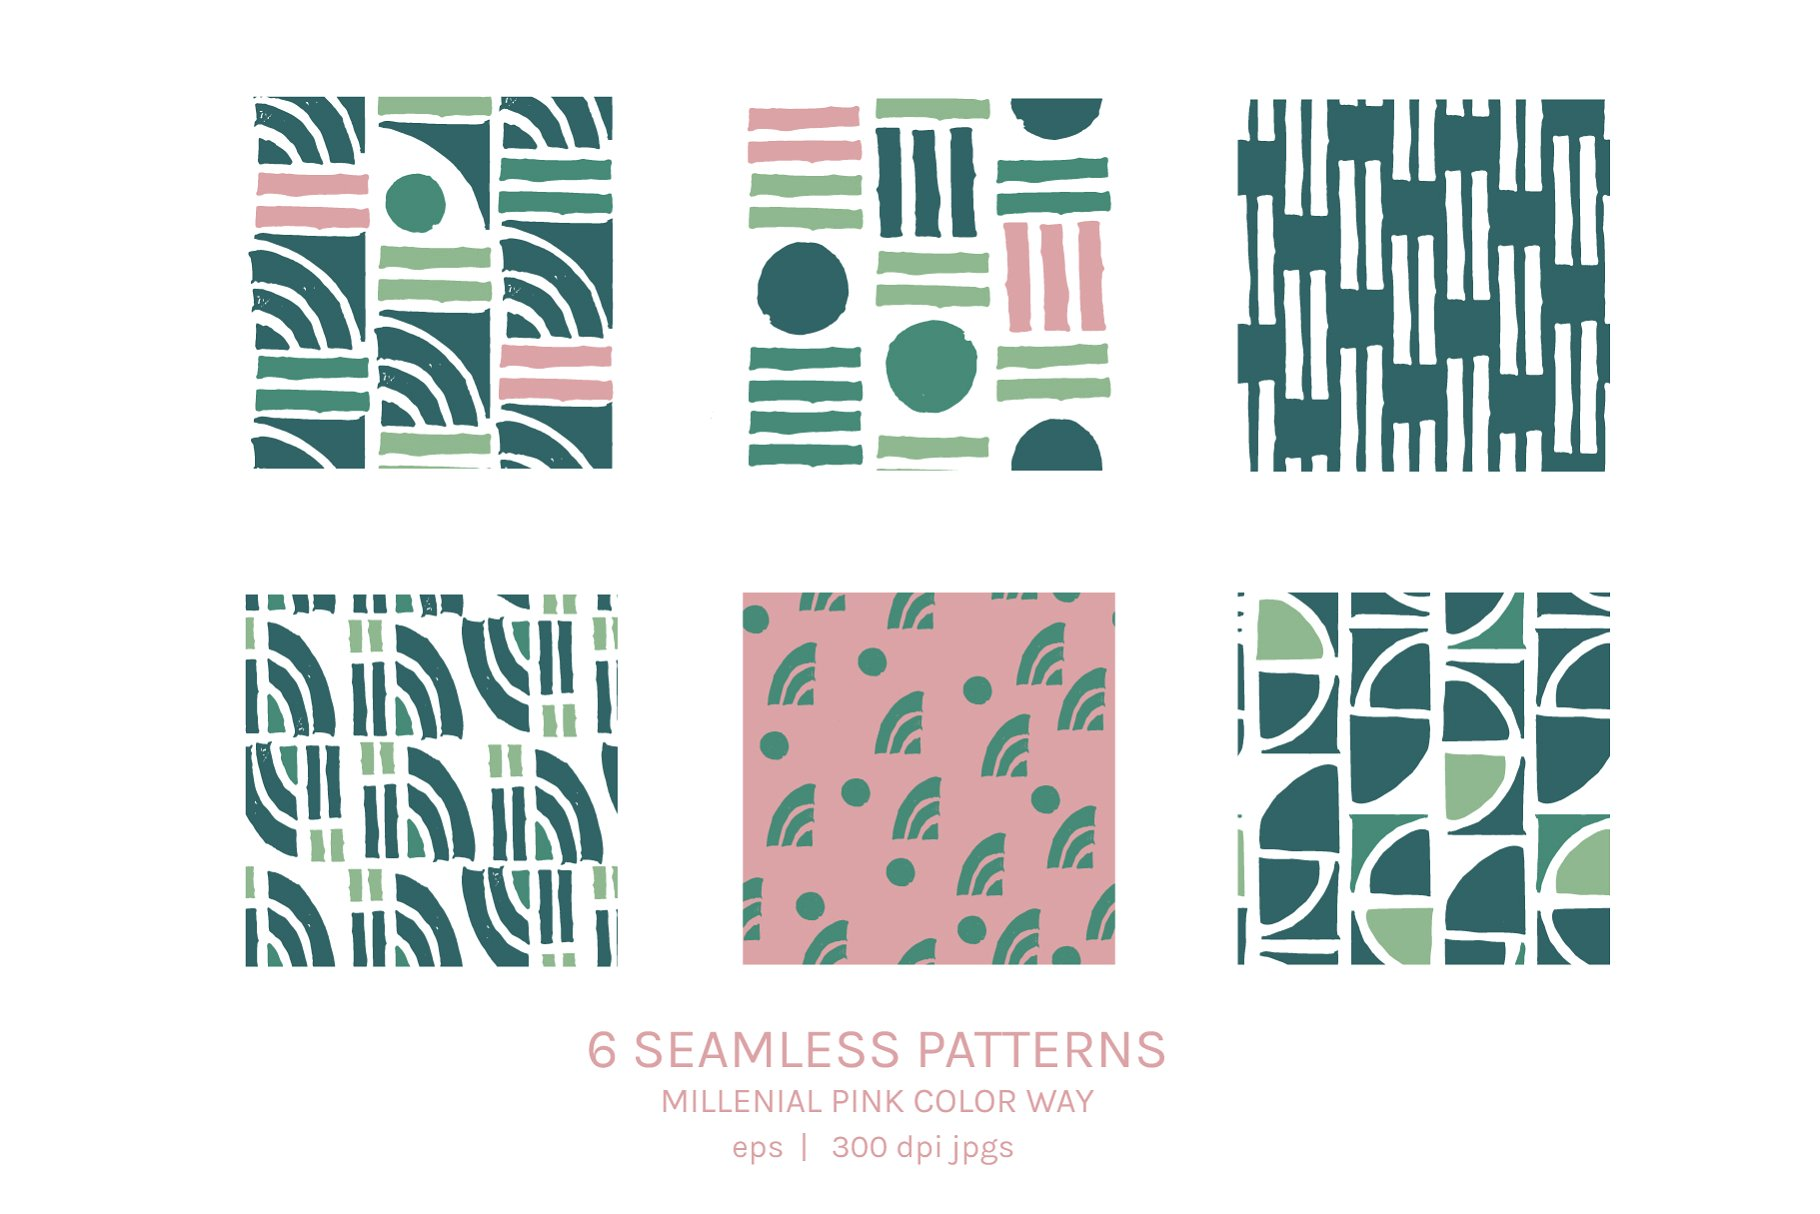 minted-modern_product-images-02-.jpg